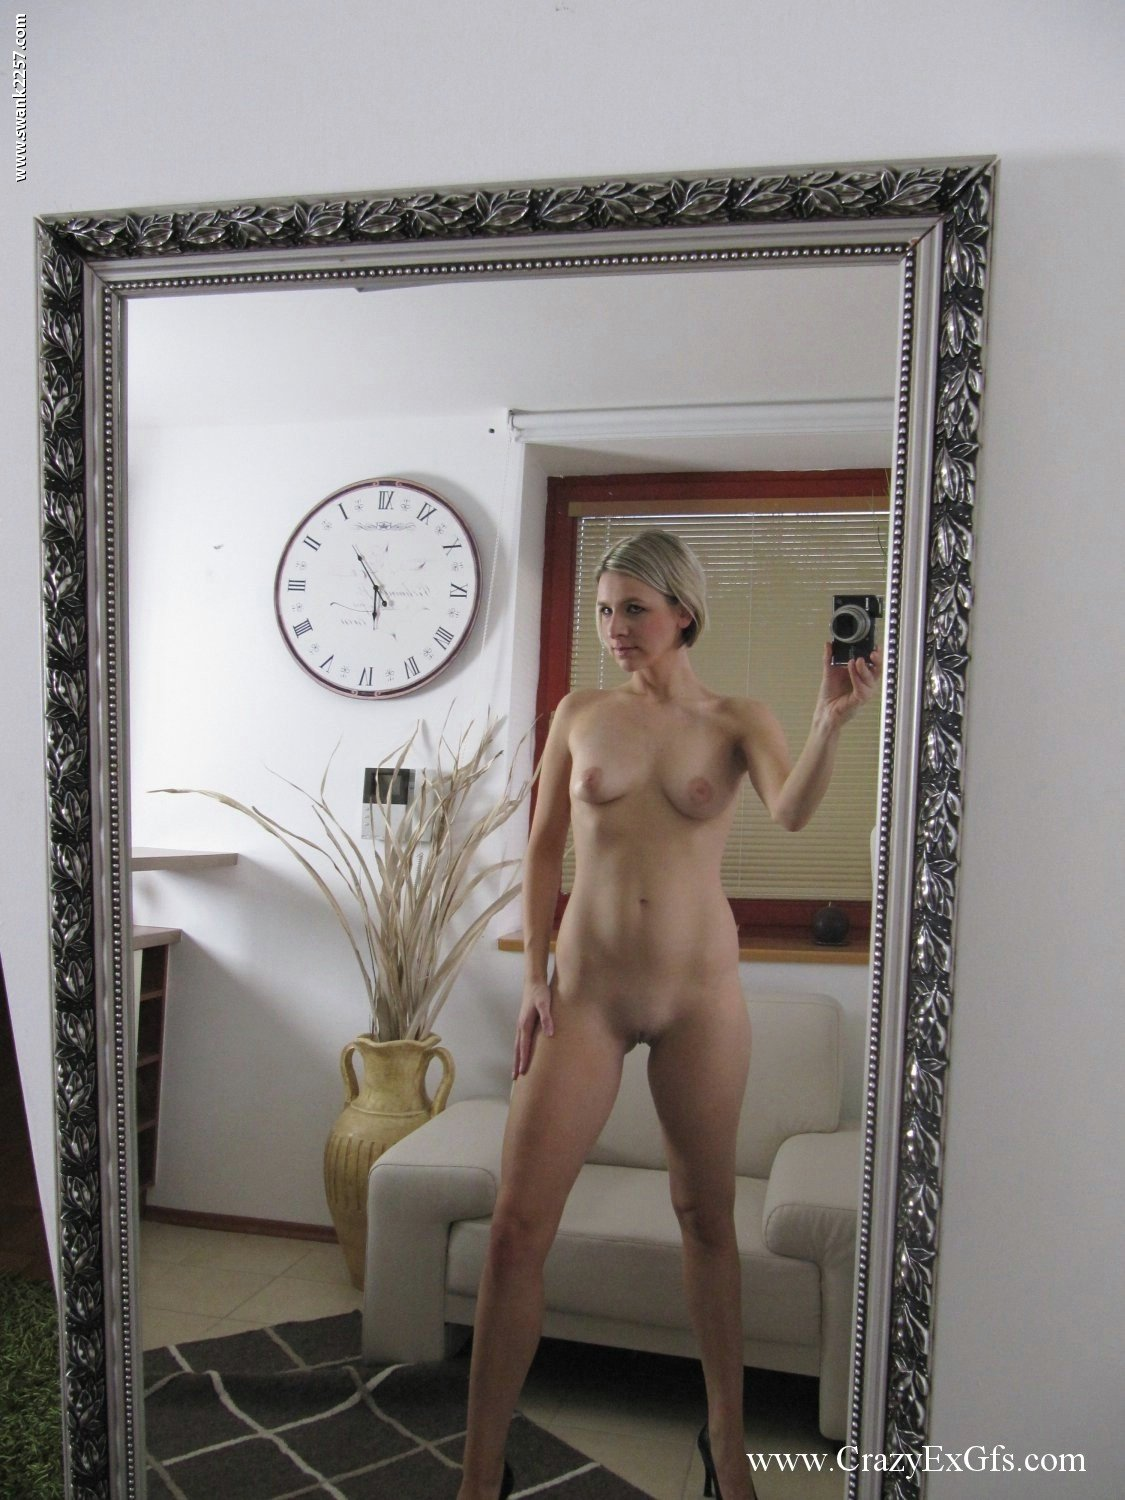 Tube videos mom wife set up Free amateur web pages